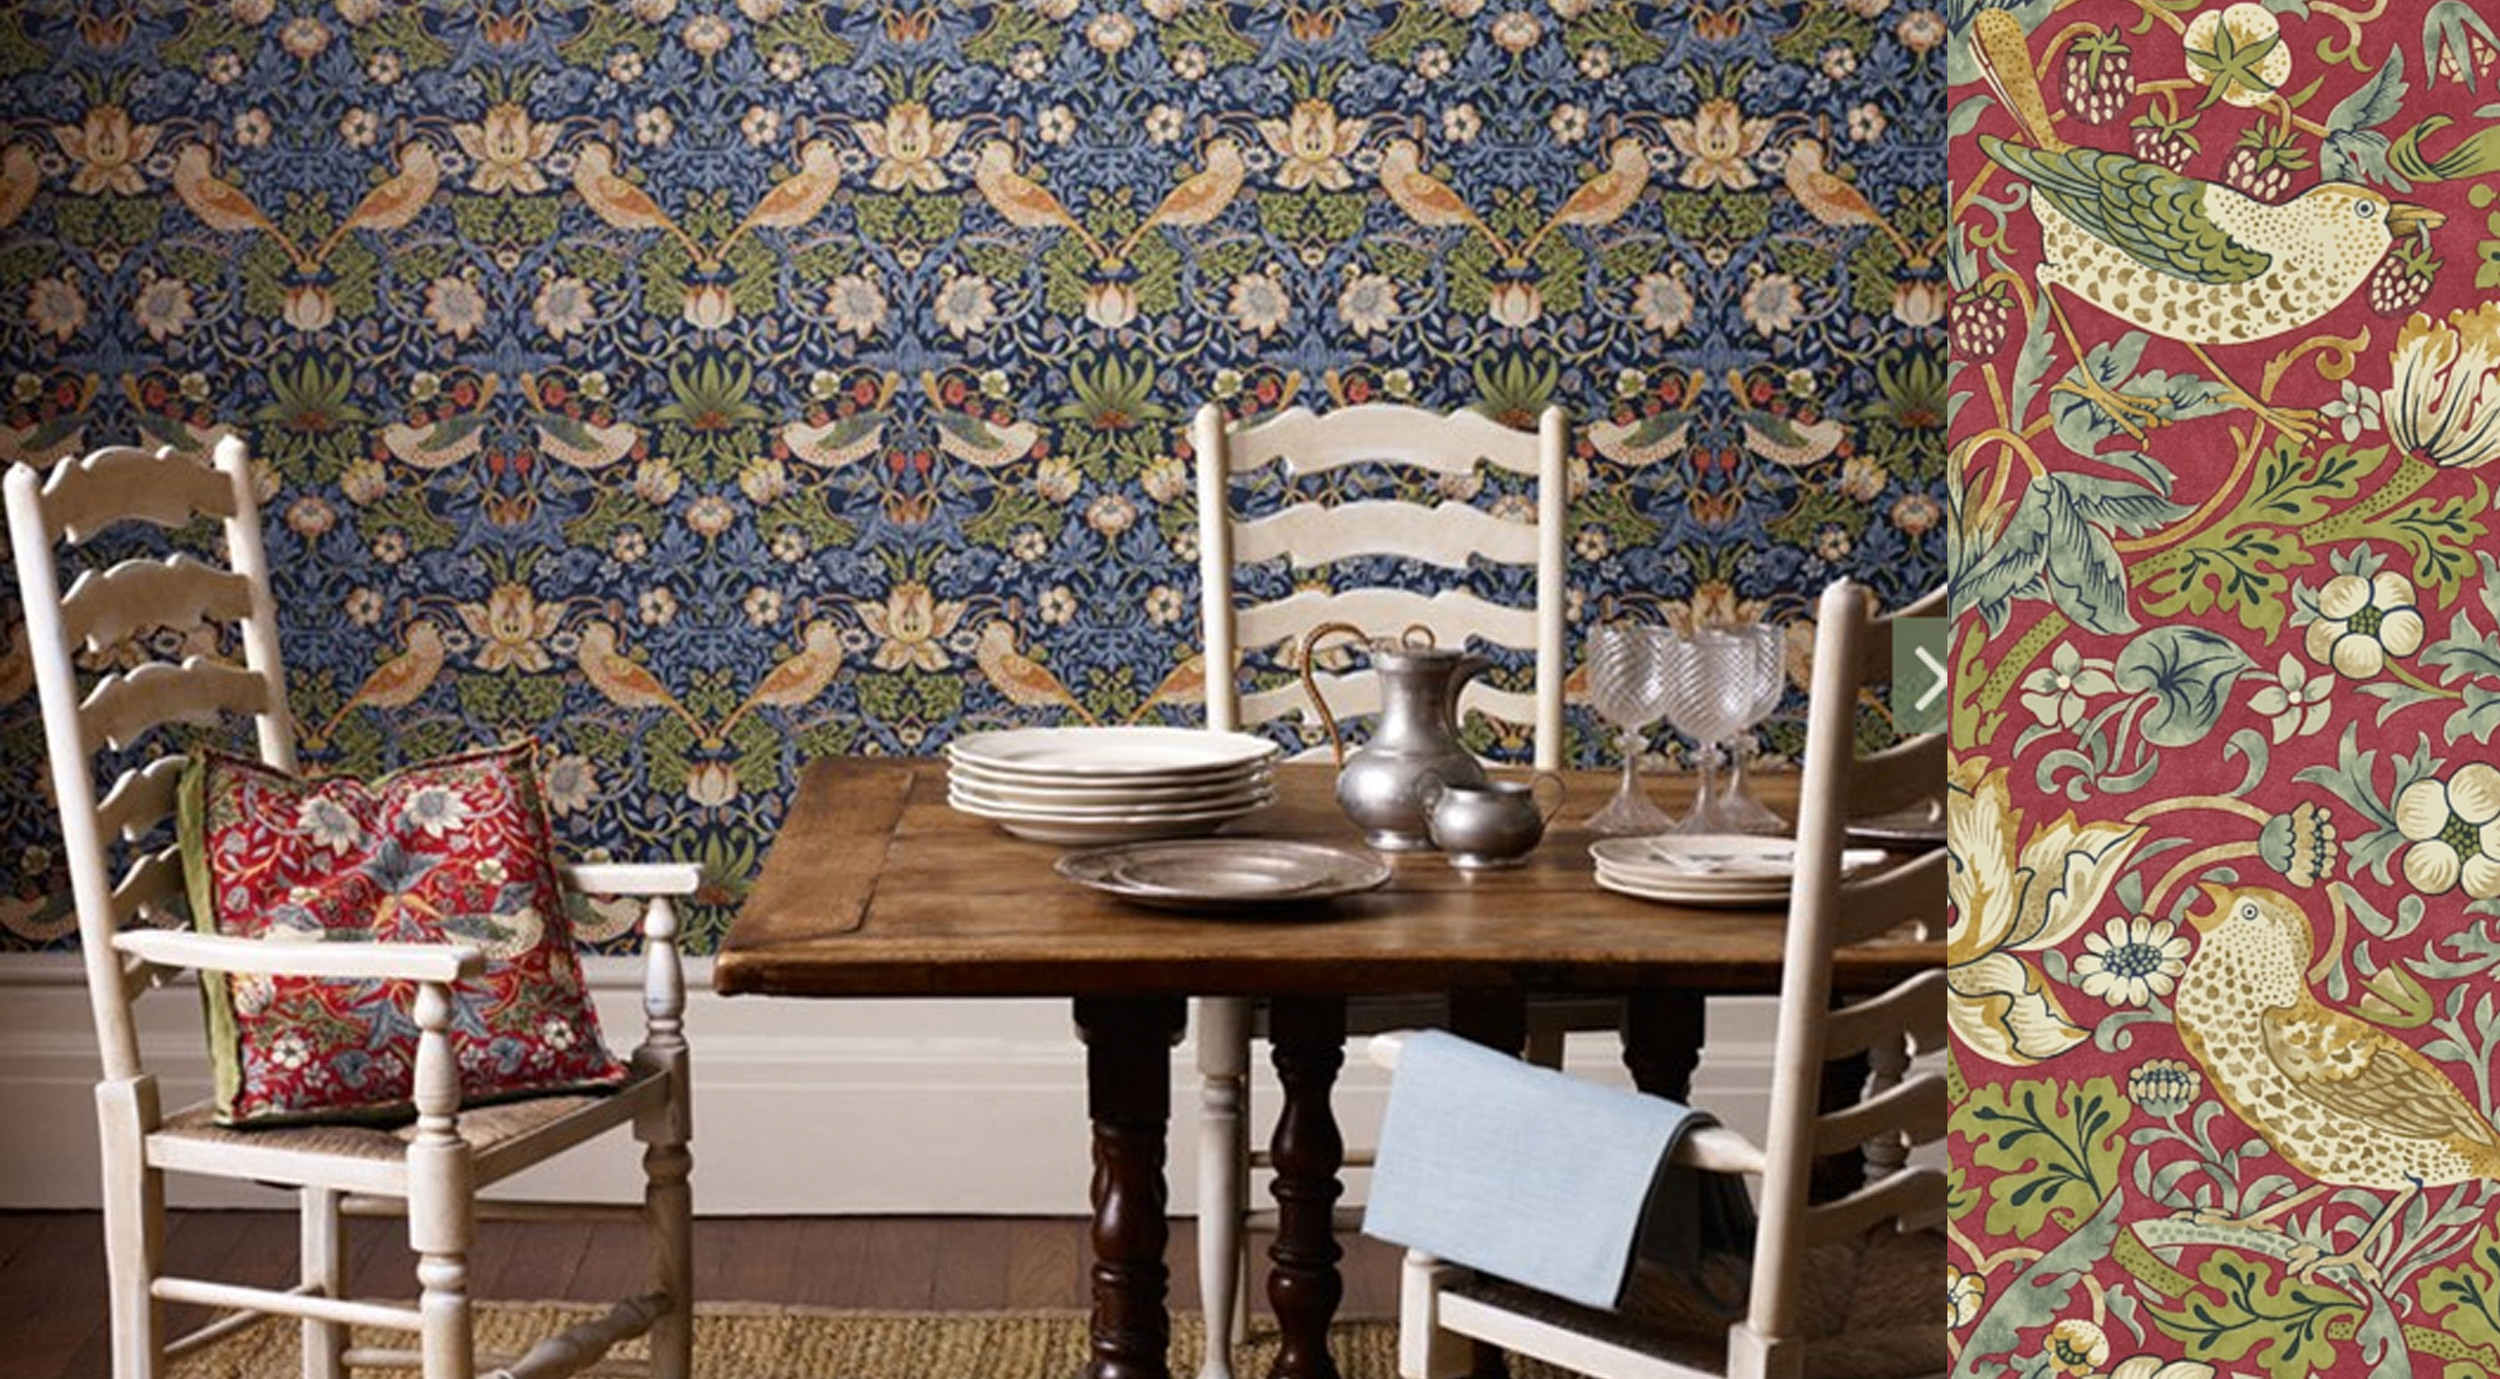 Strawberry Thief is one of the most popular designs,only recently available as wallpaper